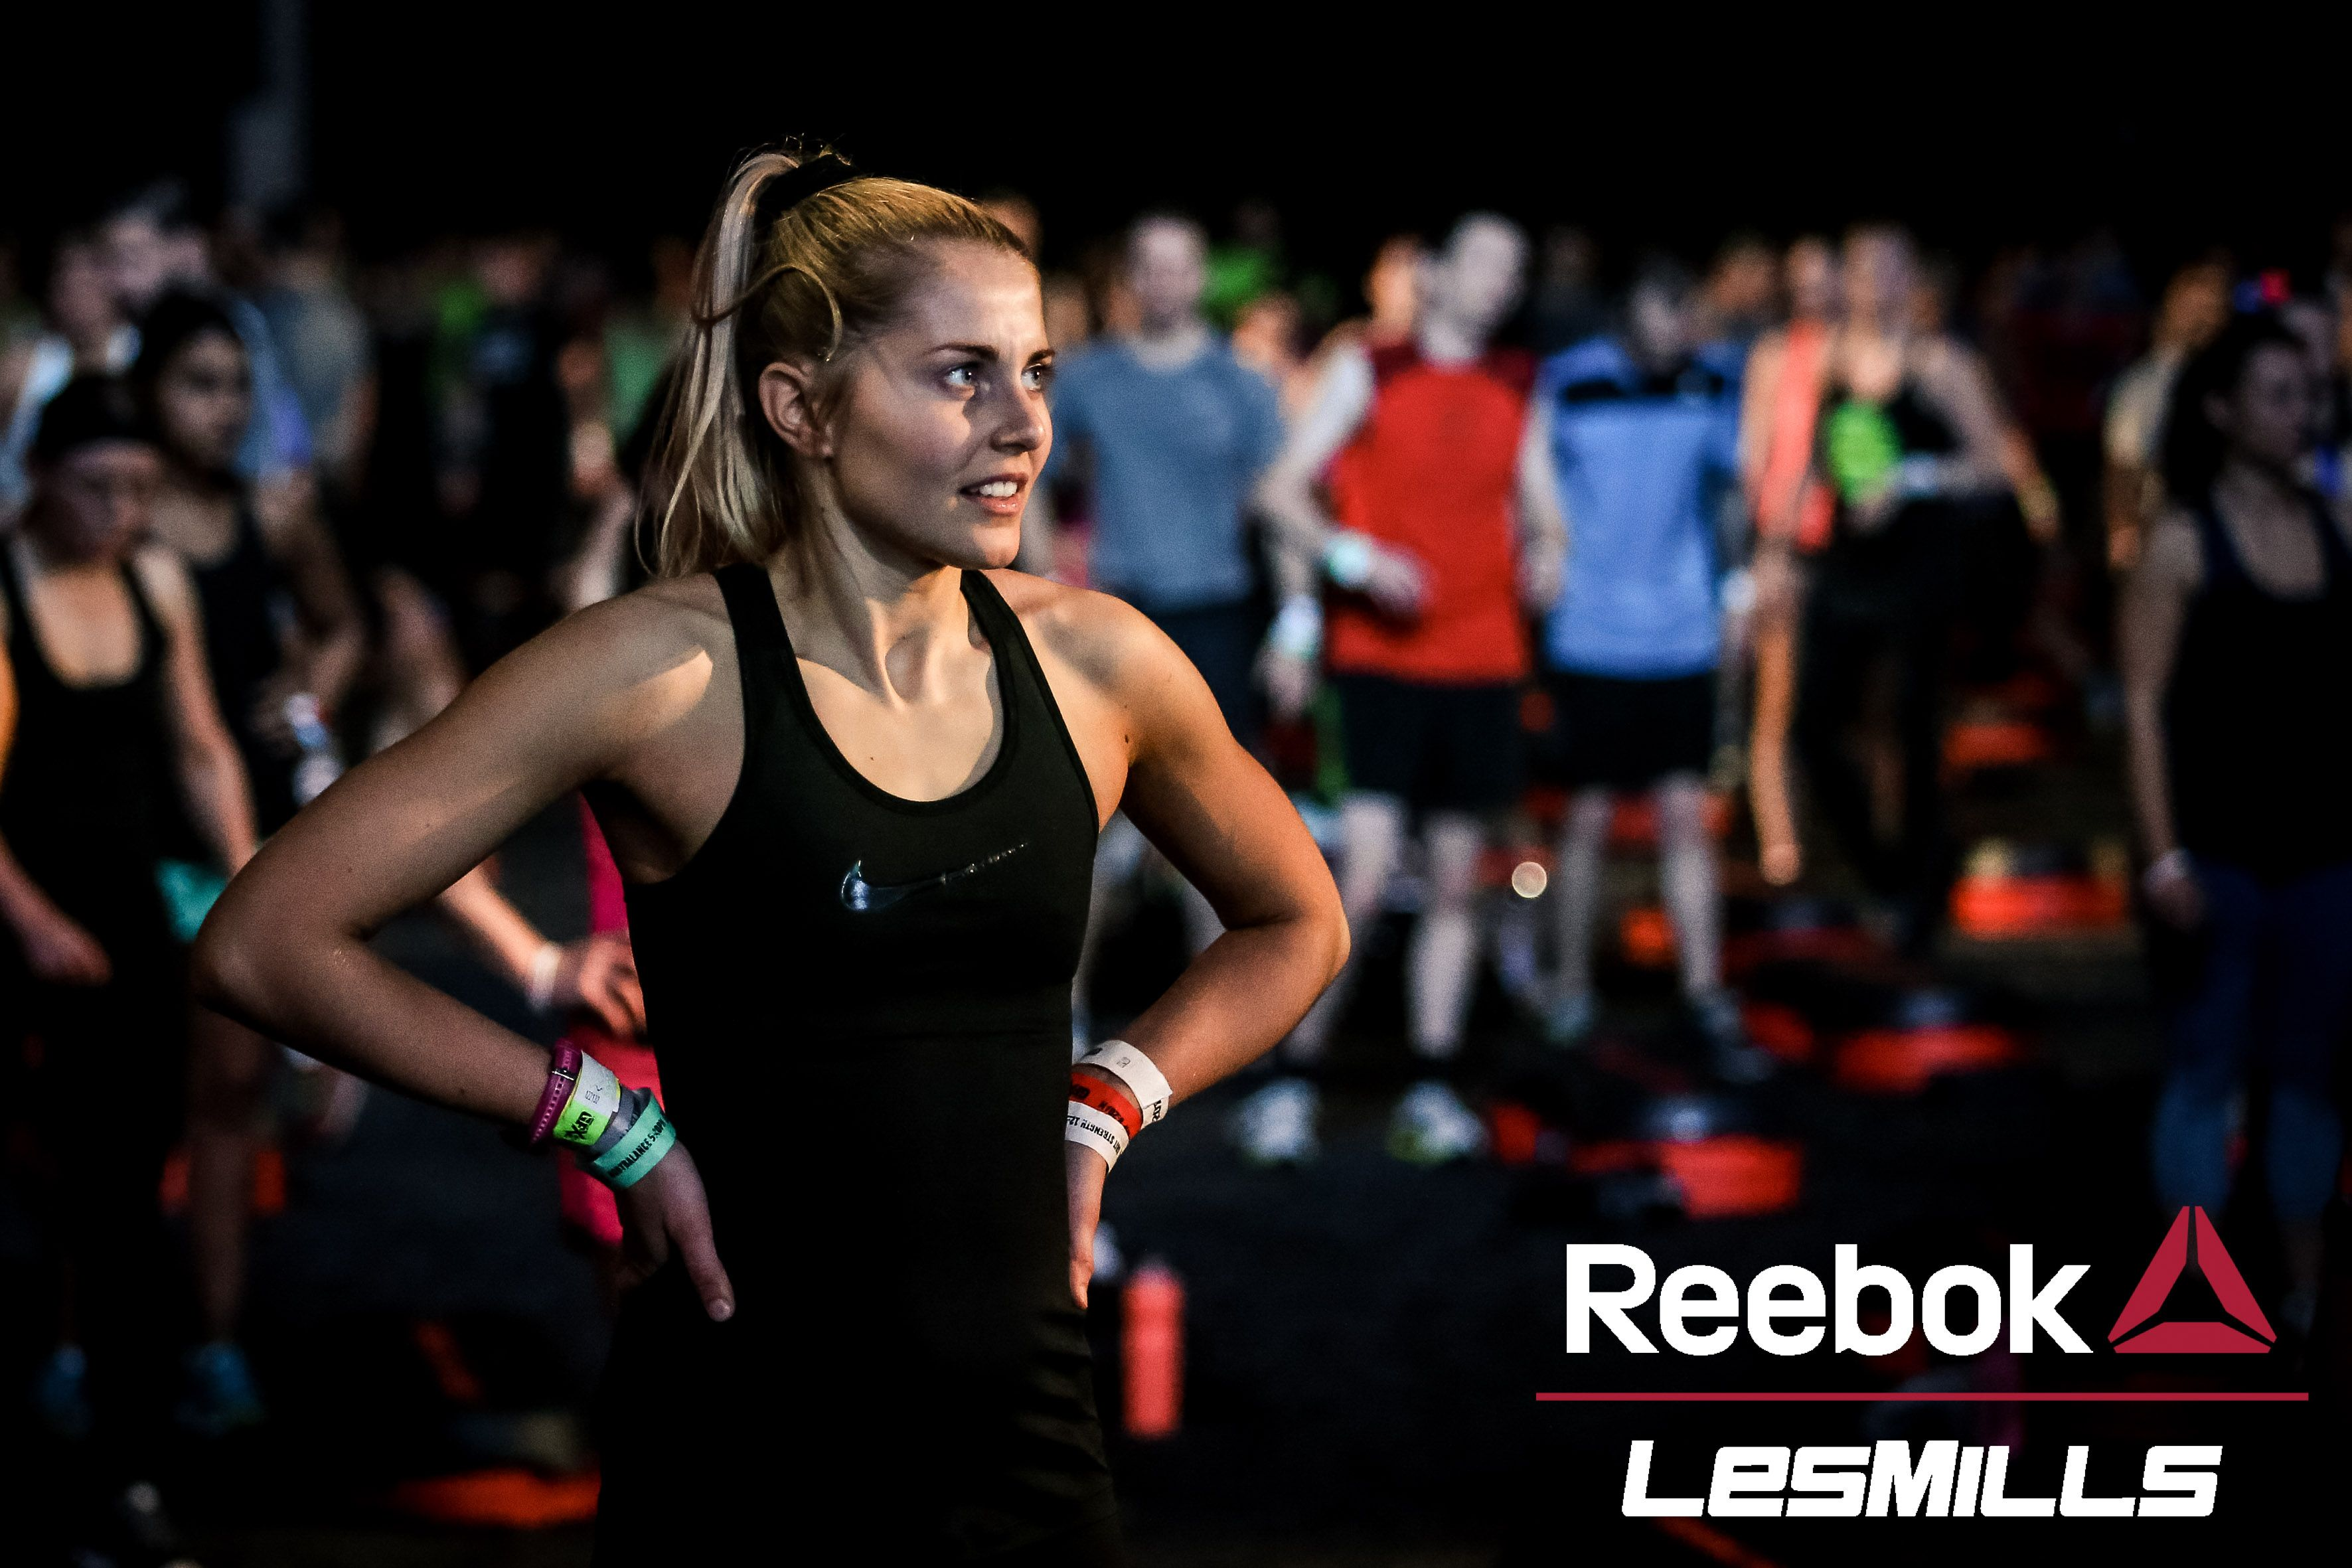 The ultimate fitness event GFX Liverpool